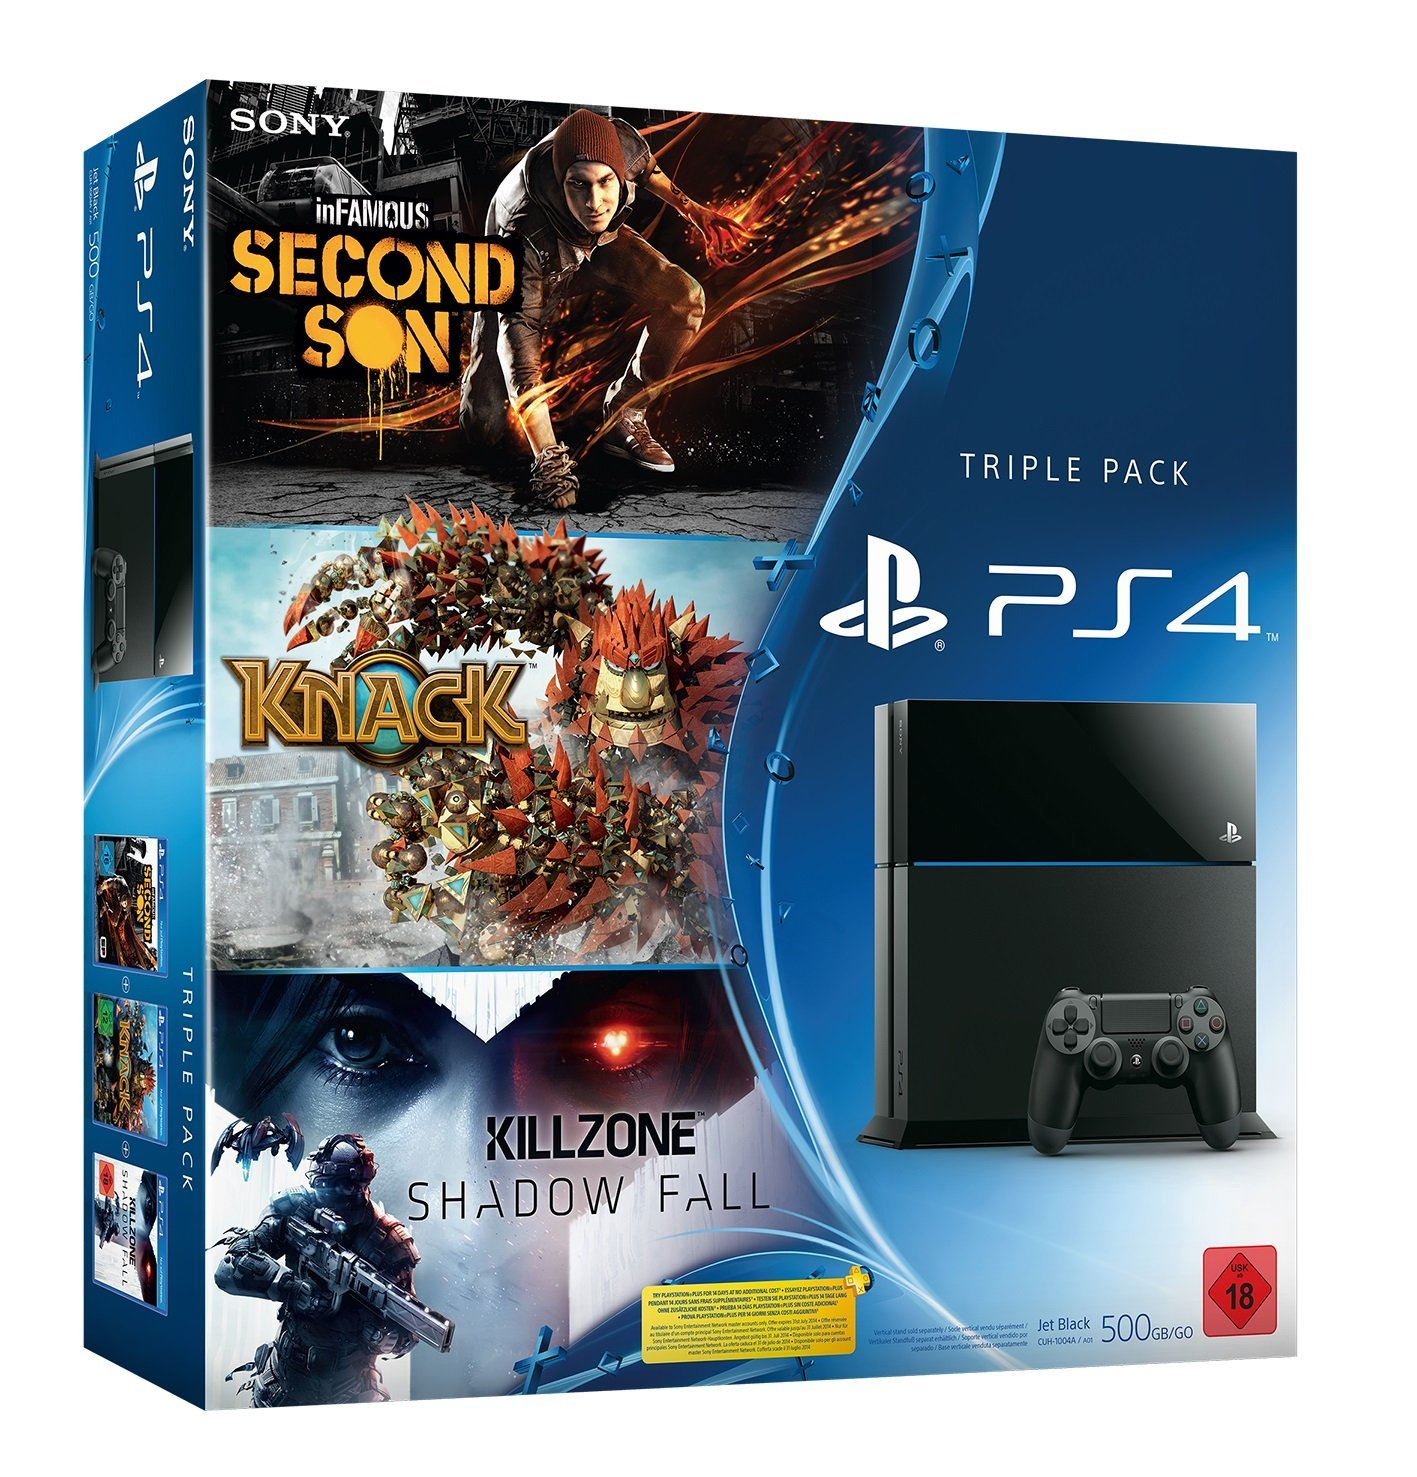 PlayStation 4 Triple Pack bei Amazon mit inFamous Second Son, Knack und Killzone Shadow Fall